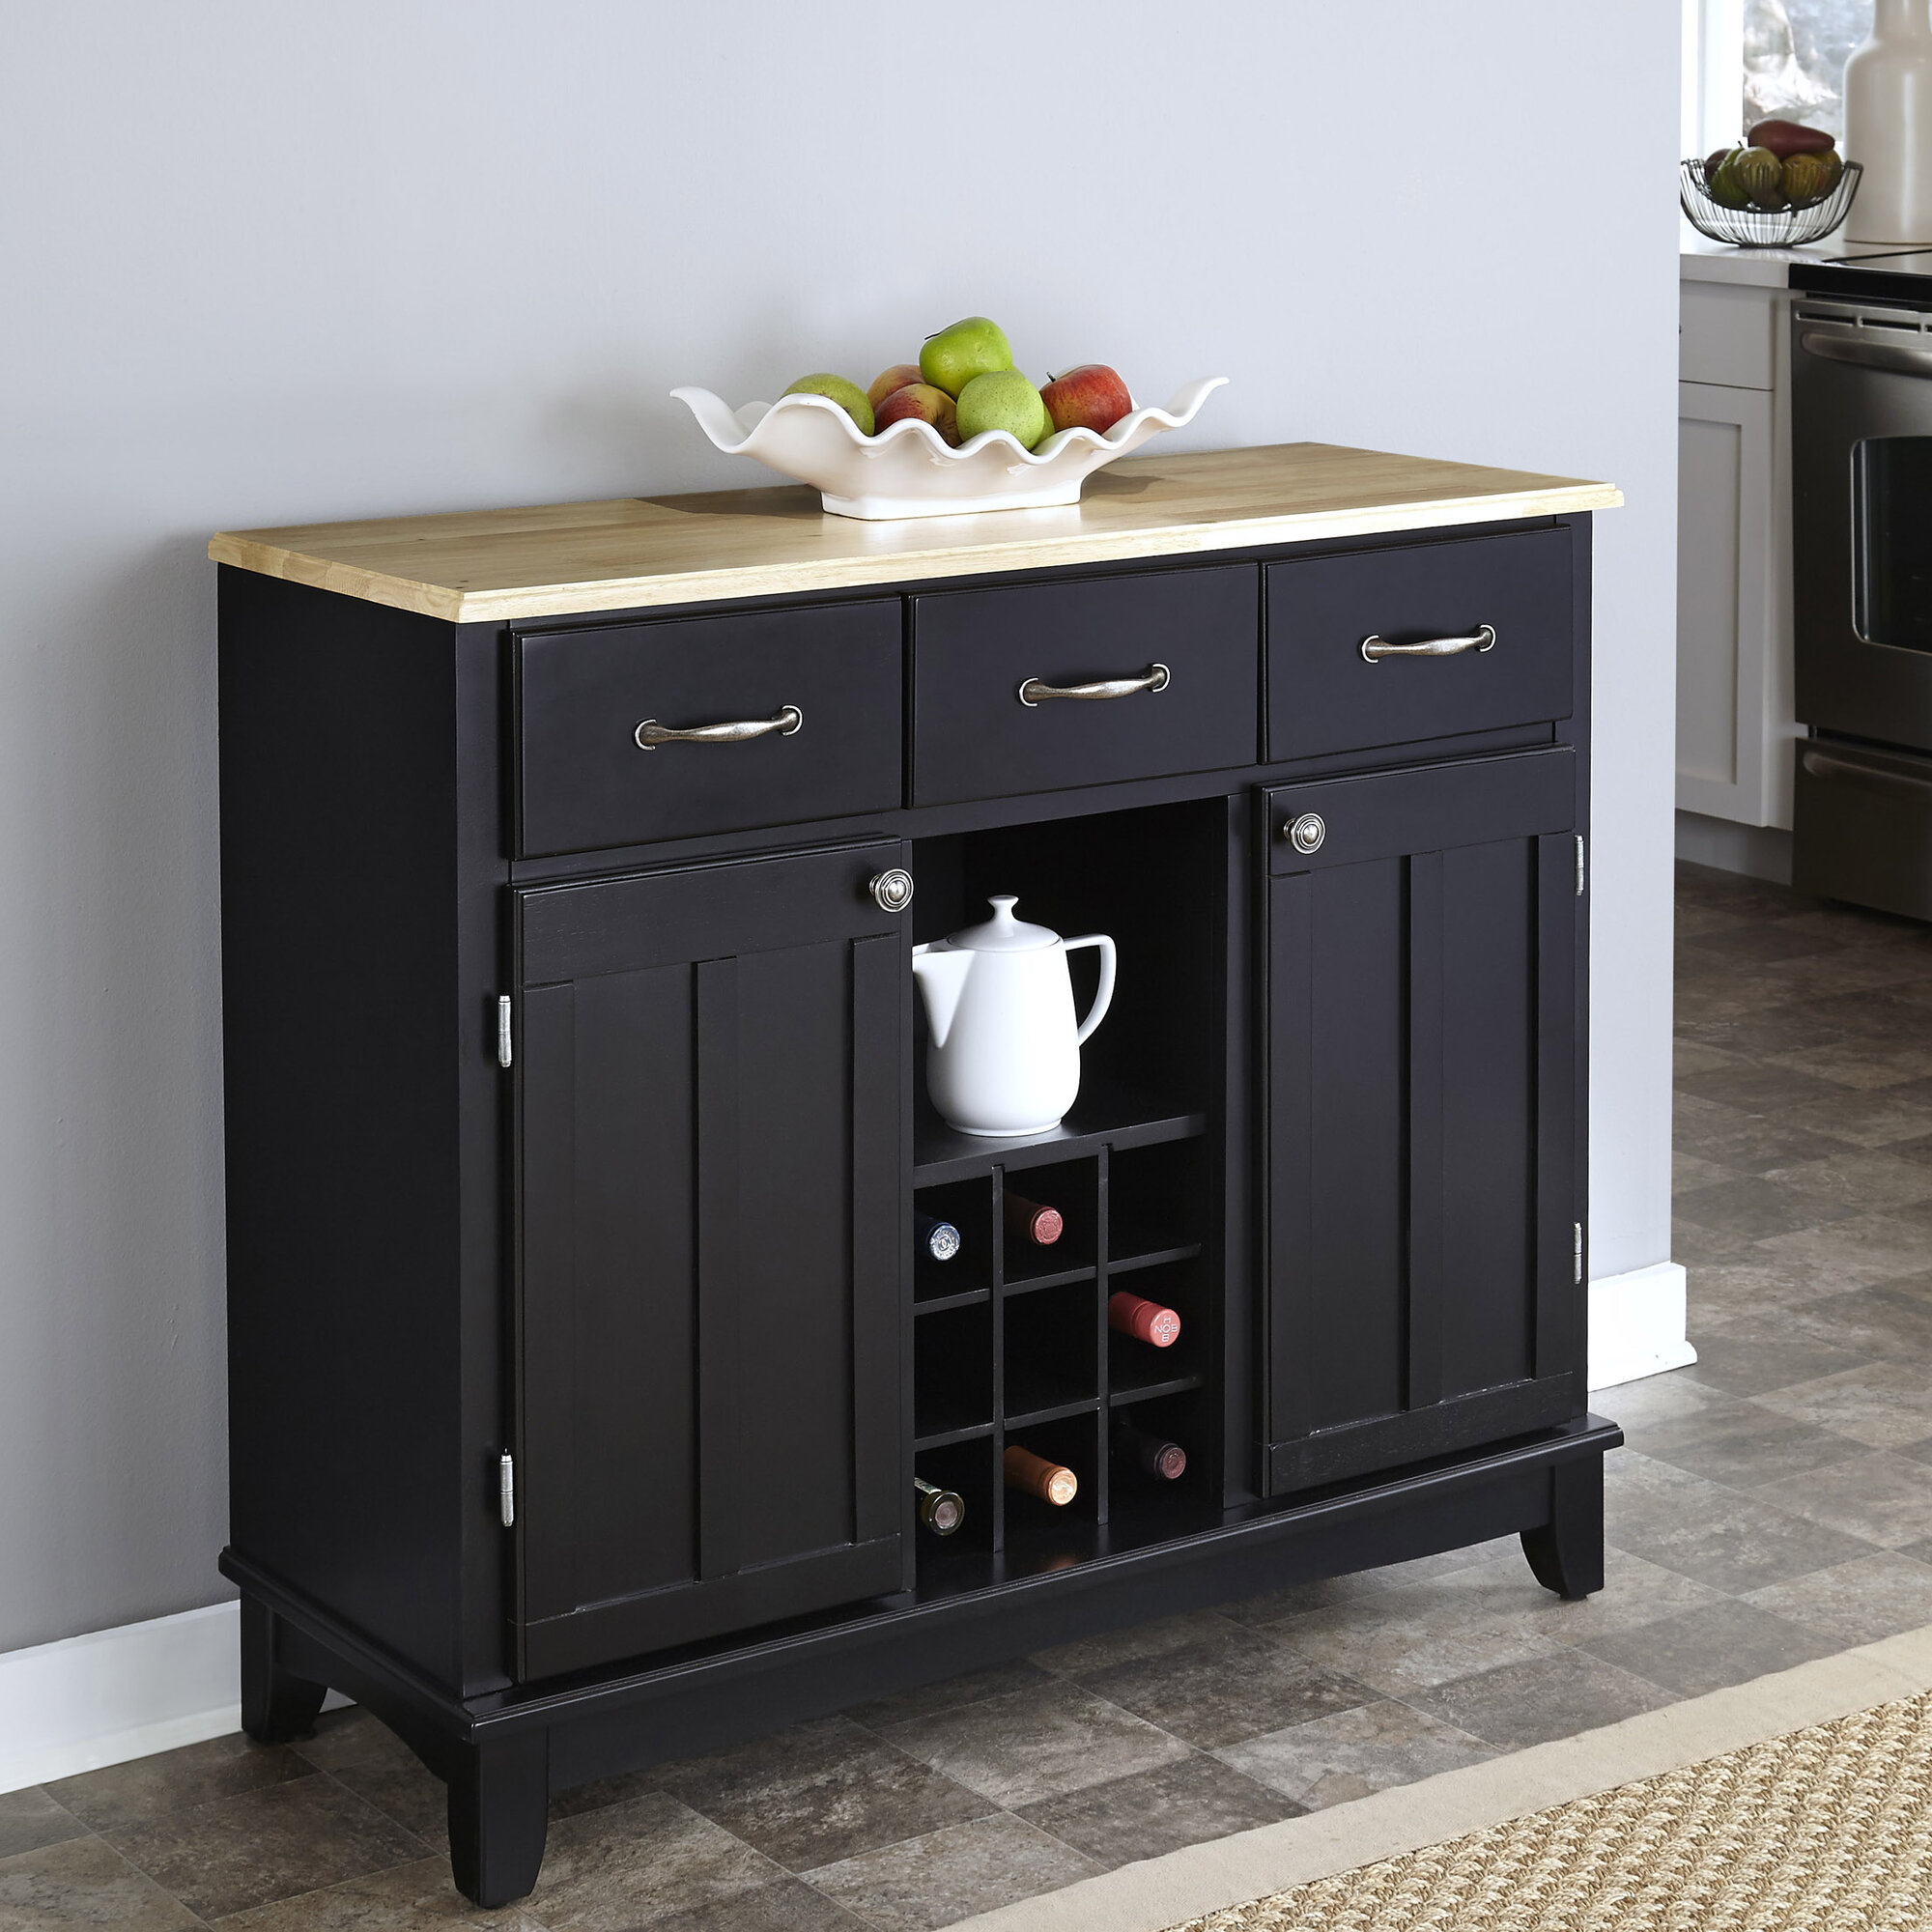 Dining Room Buffet : Details about Sideboard Buffet Server Dining Room Cabinet Wine Rack ...